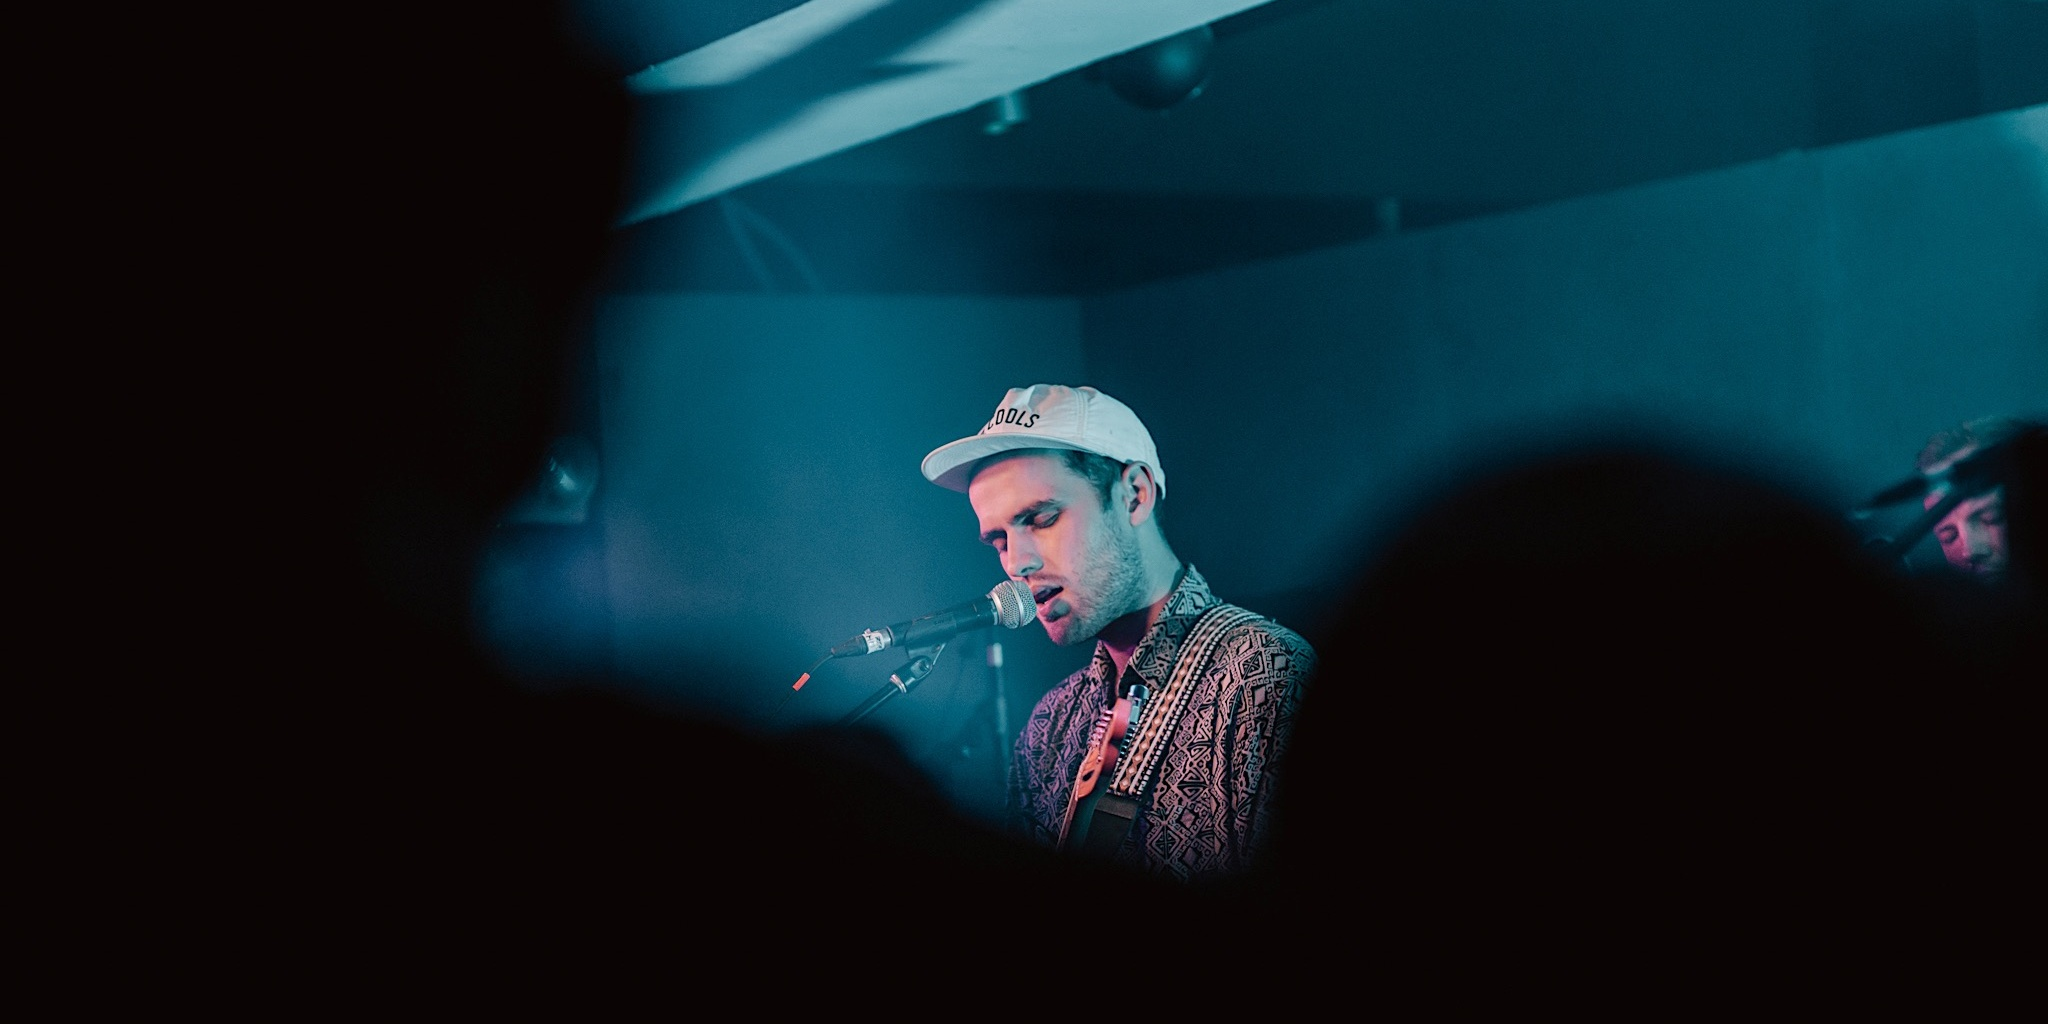 He is the Sorcerer: The power of Jordan Rakei's lo-fi funk in Singapore — gig report